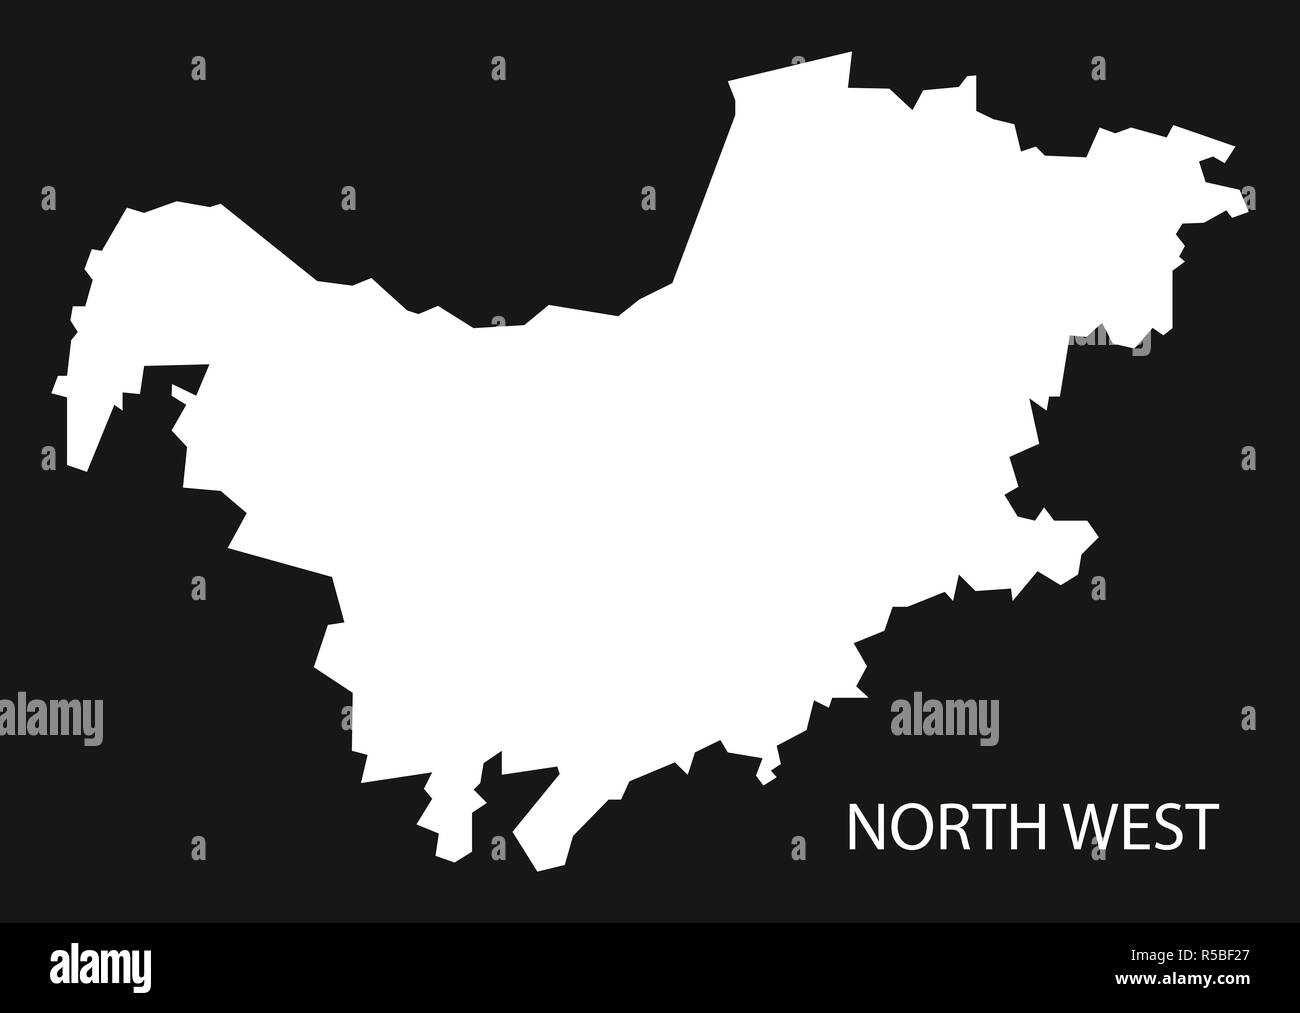 South Africa North West Map.North West South Africa Map Black Inverted Silhouette